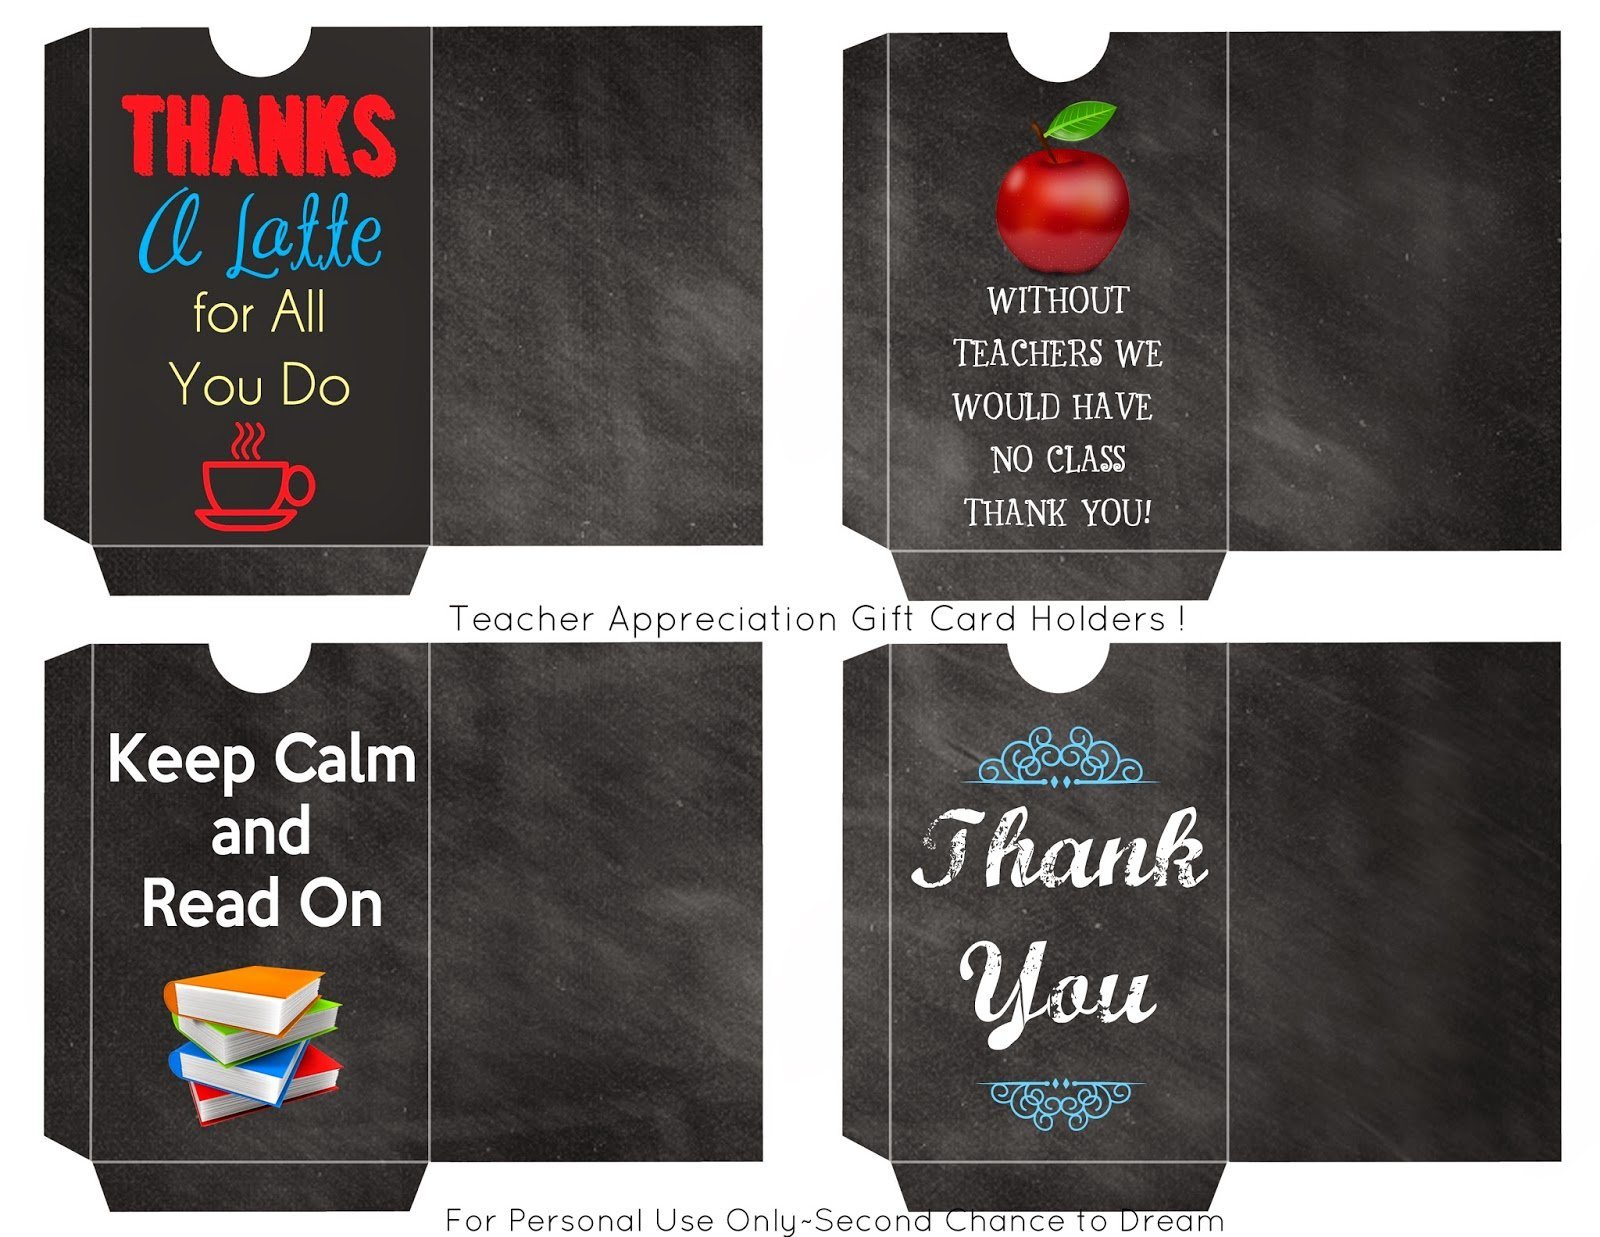 Teacher+Appreciation+Gift+Card+Holders+copy1 Free Teacher Appreciation Gift Card Holders